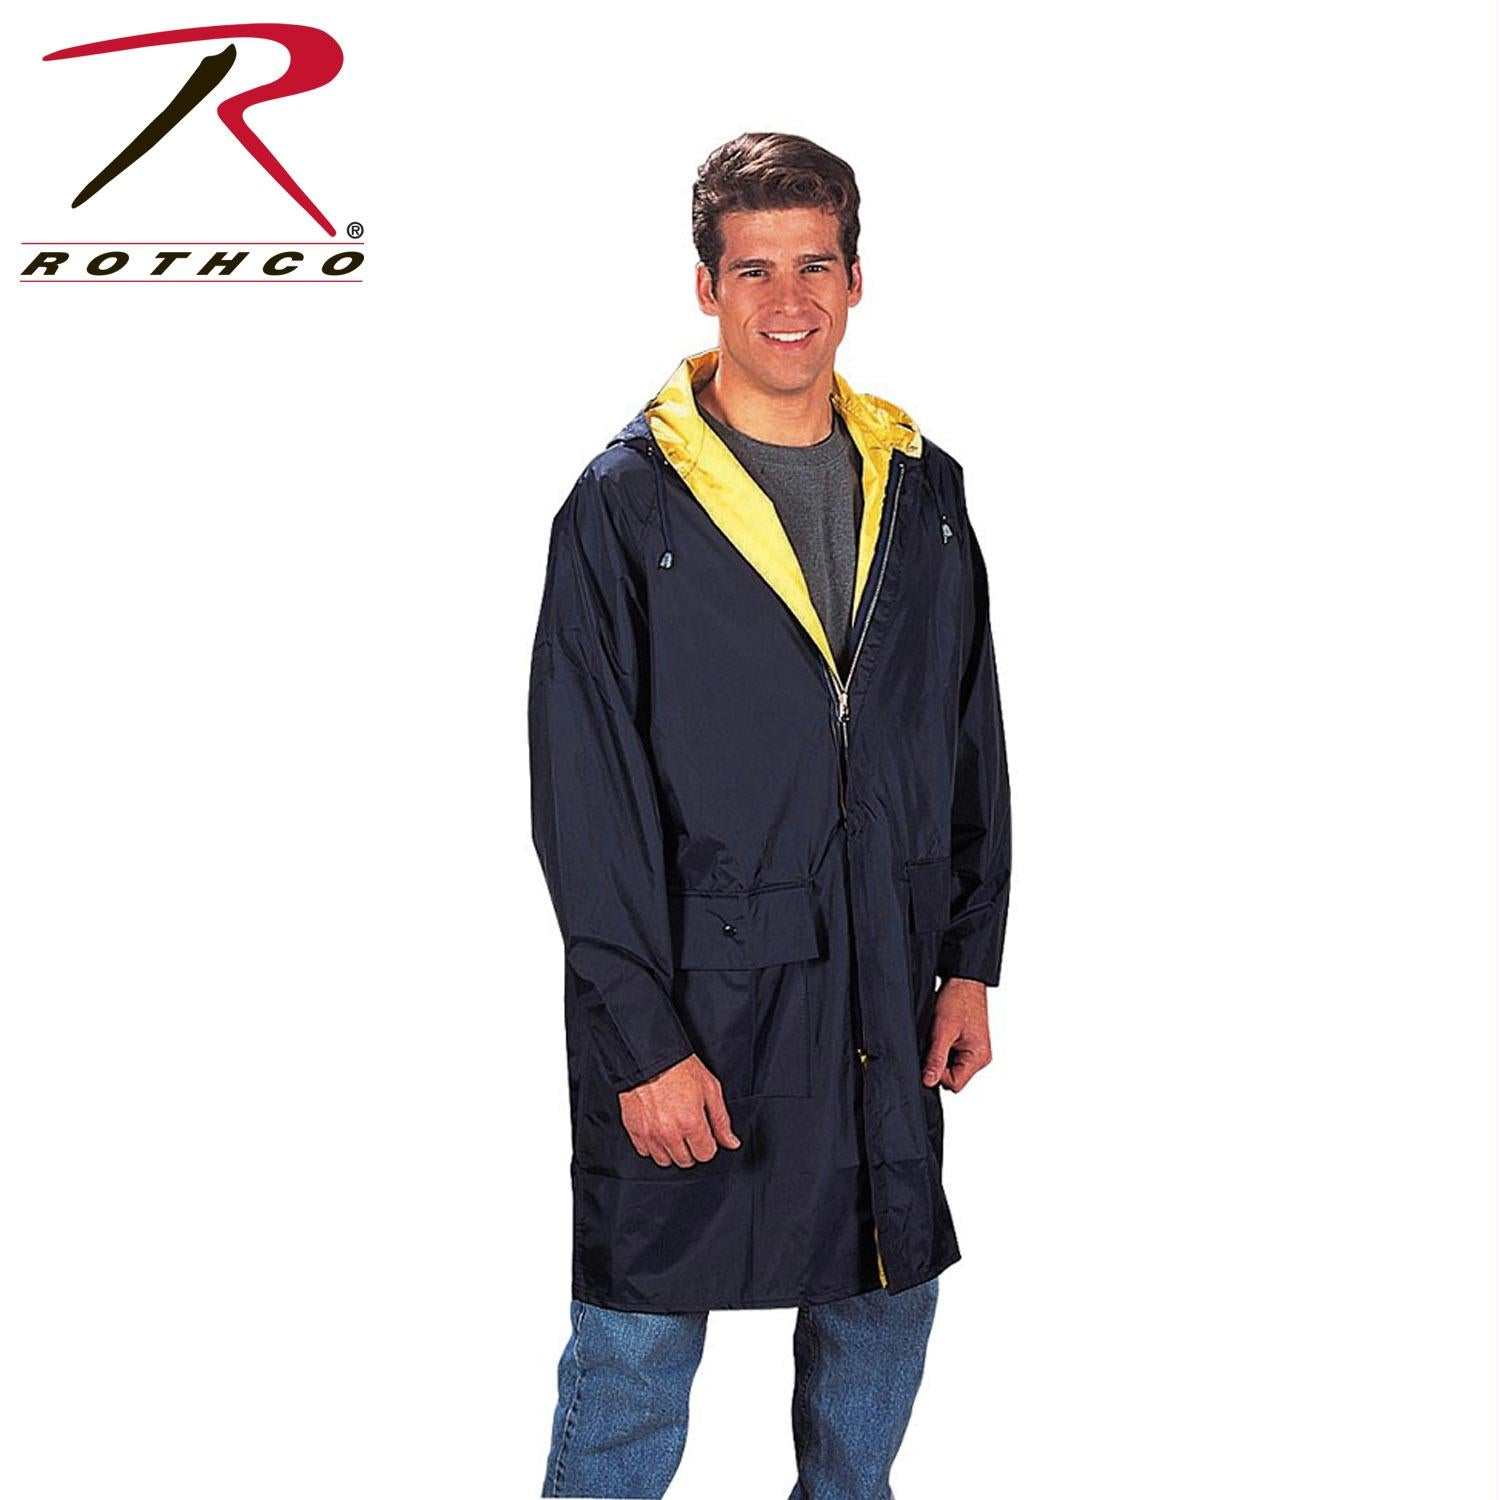 Rothco PVC Inner Attached Hood With Under Arm Vents - Navy Blue / Yellow / XL